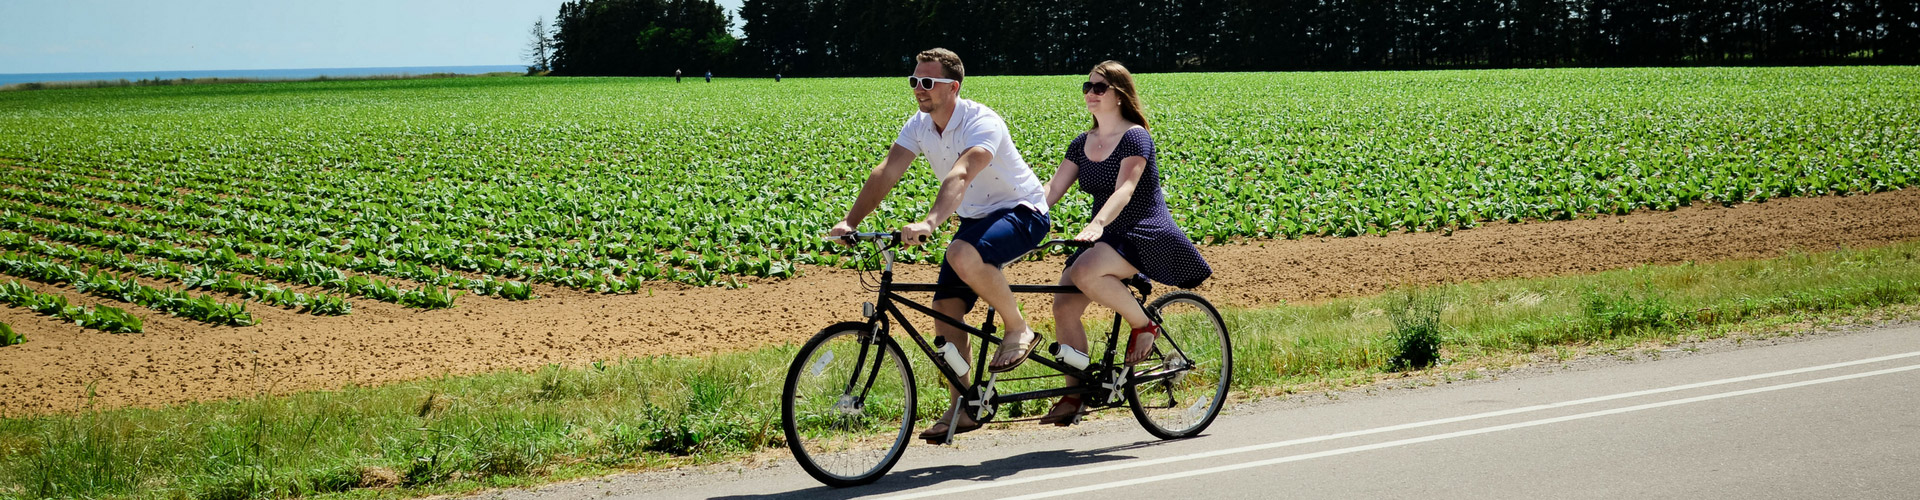 Man and woman riding bike built for two along lakeside field